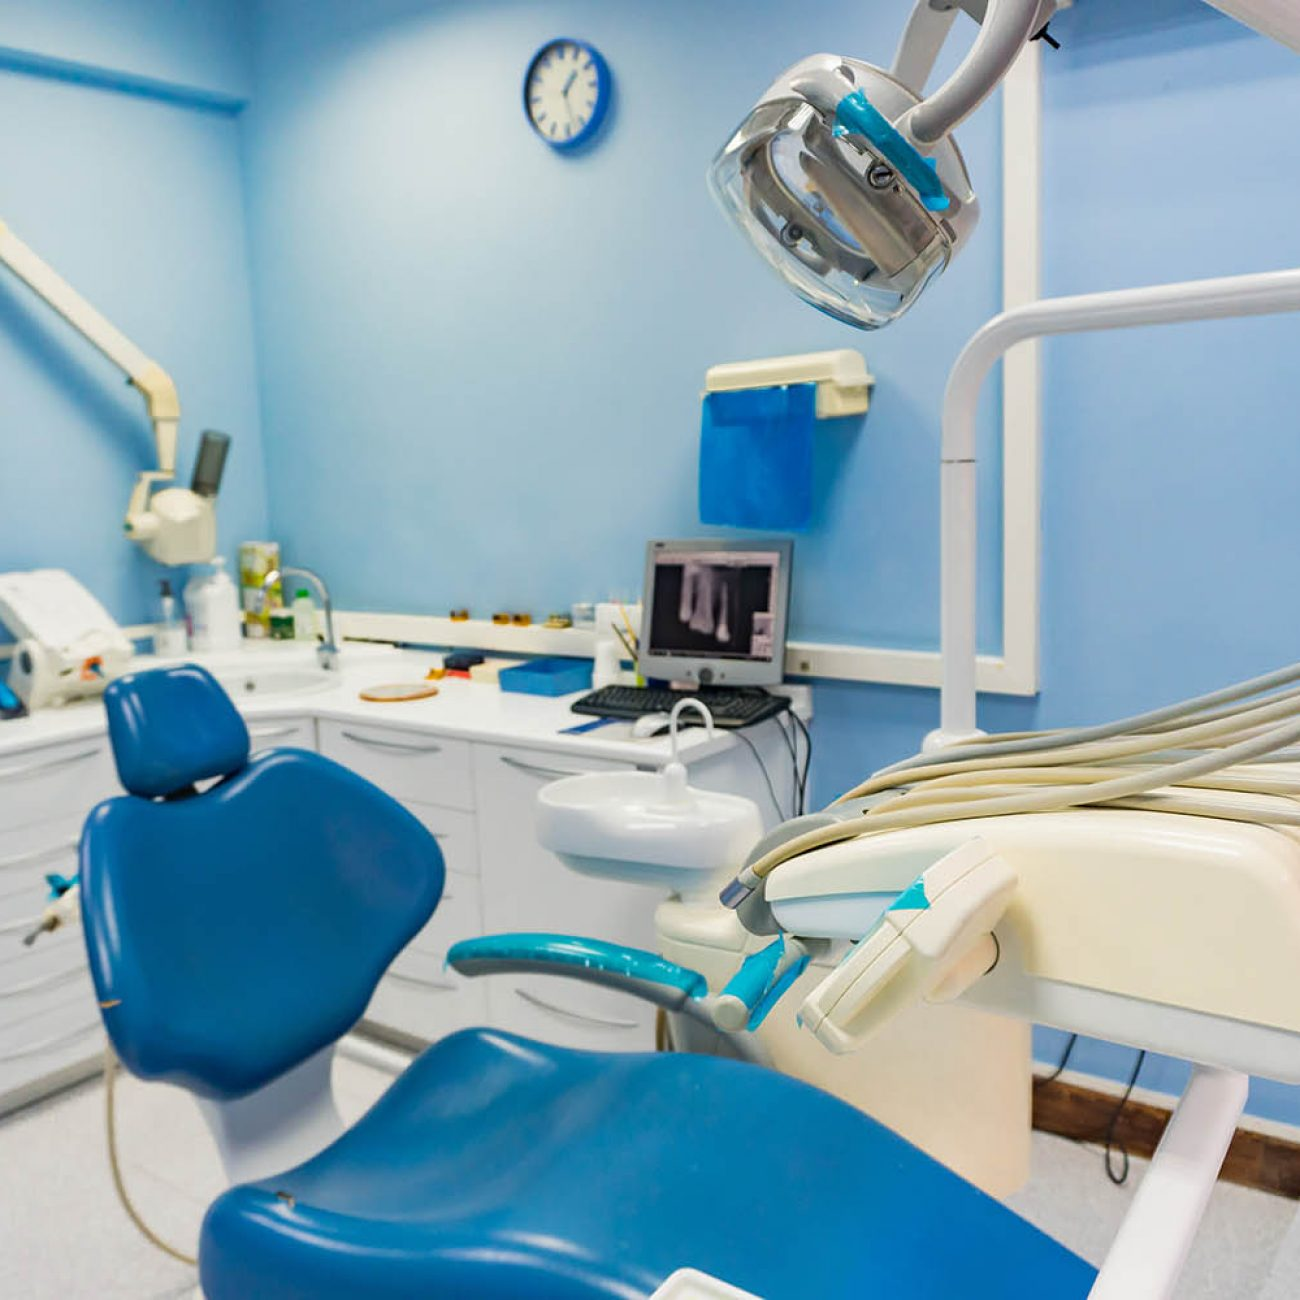 NORCLINIC DENTAL